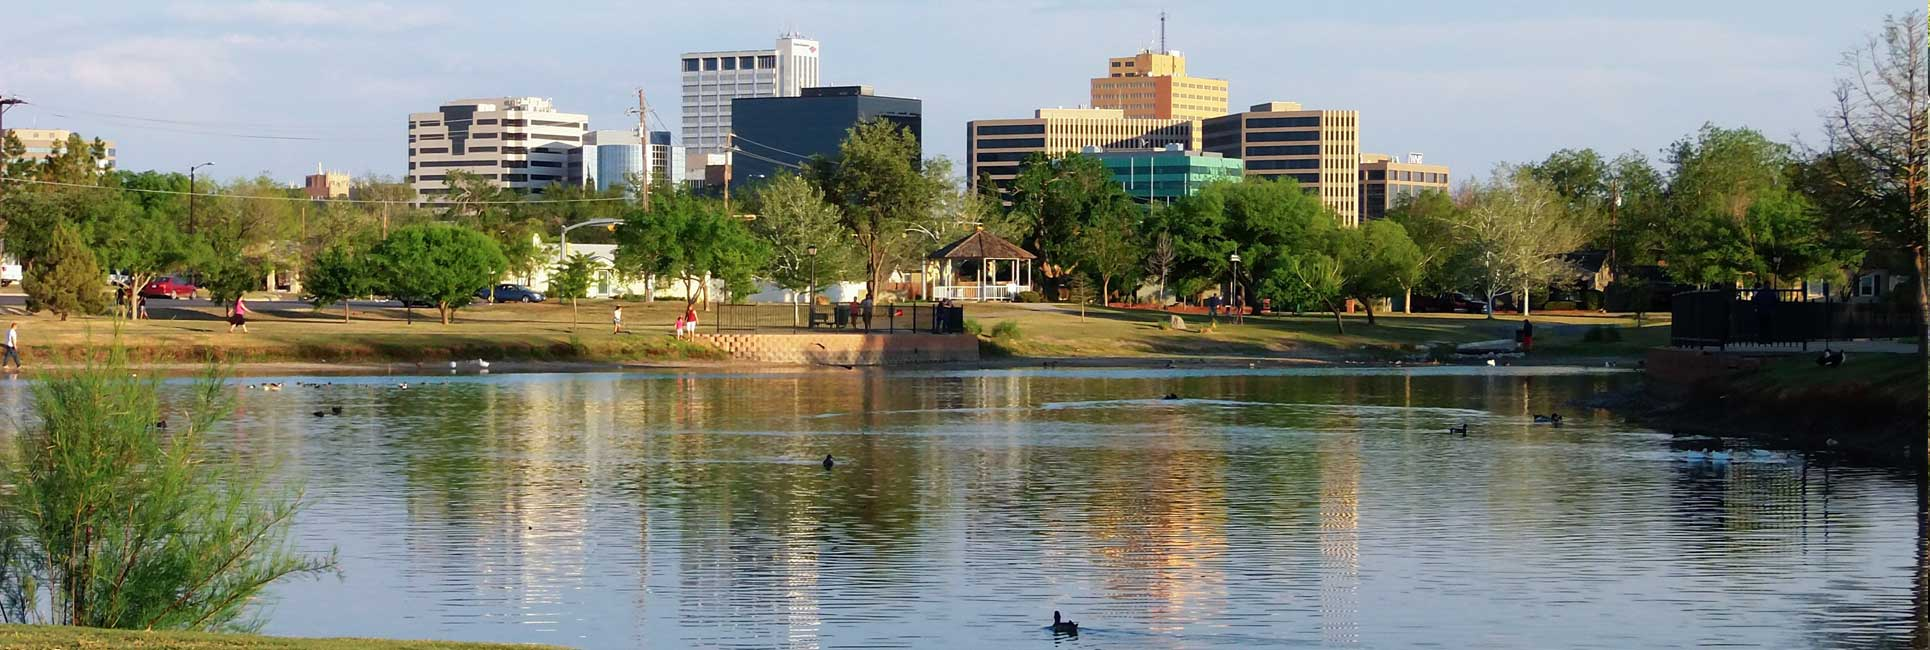 A view of downtown midland, TX over looking a lake where people are fishing and hiking.